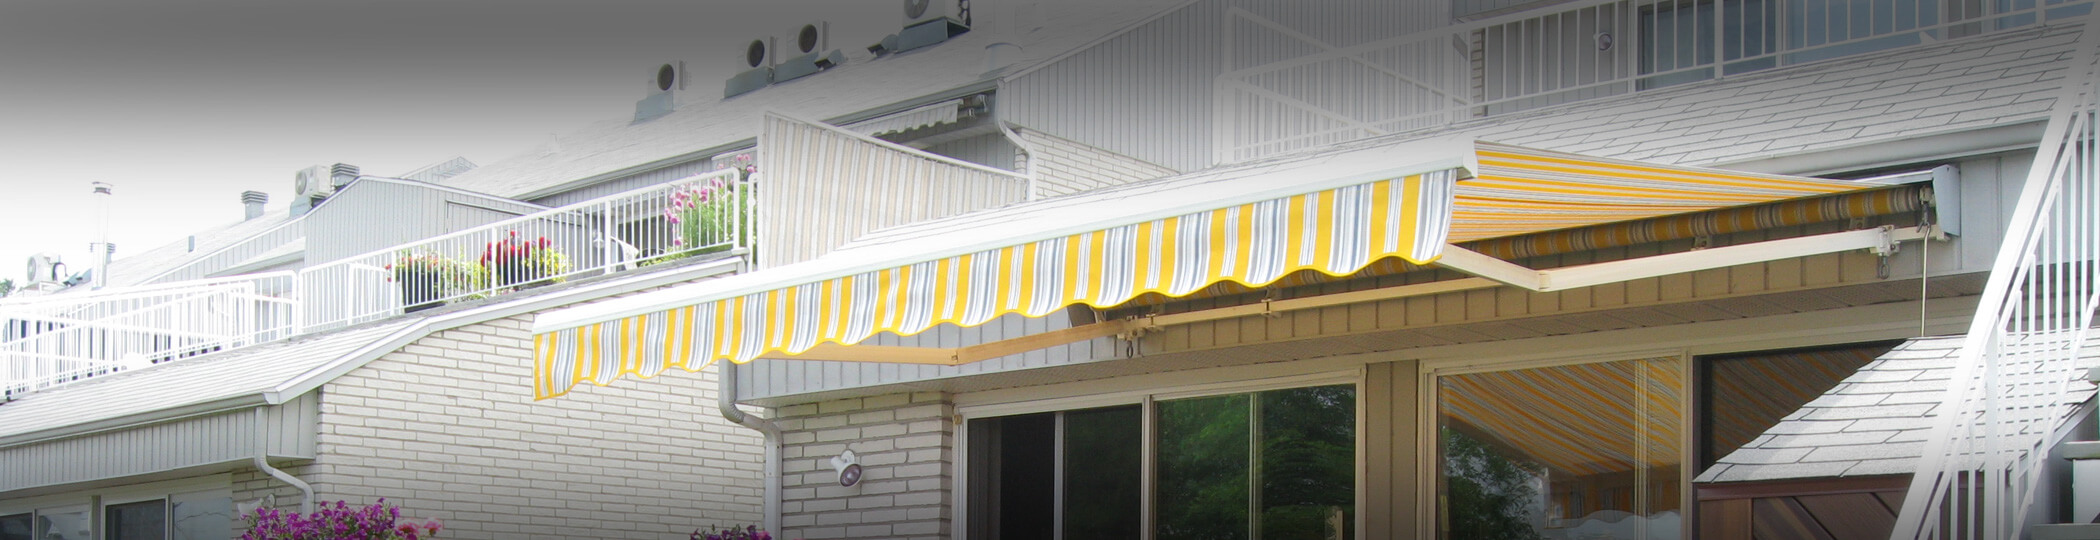 Residential retractable awnings Auvents Valleyfield